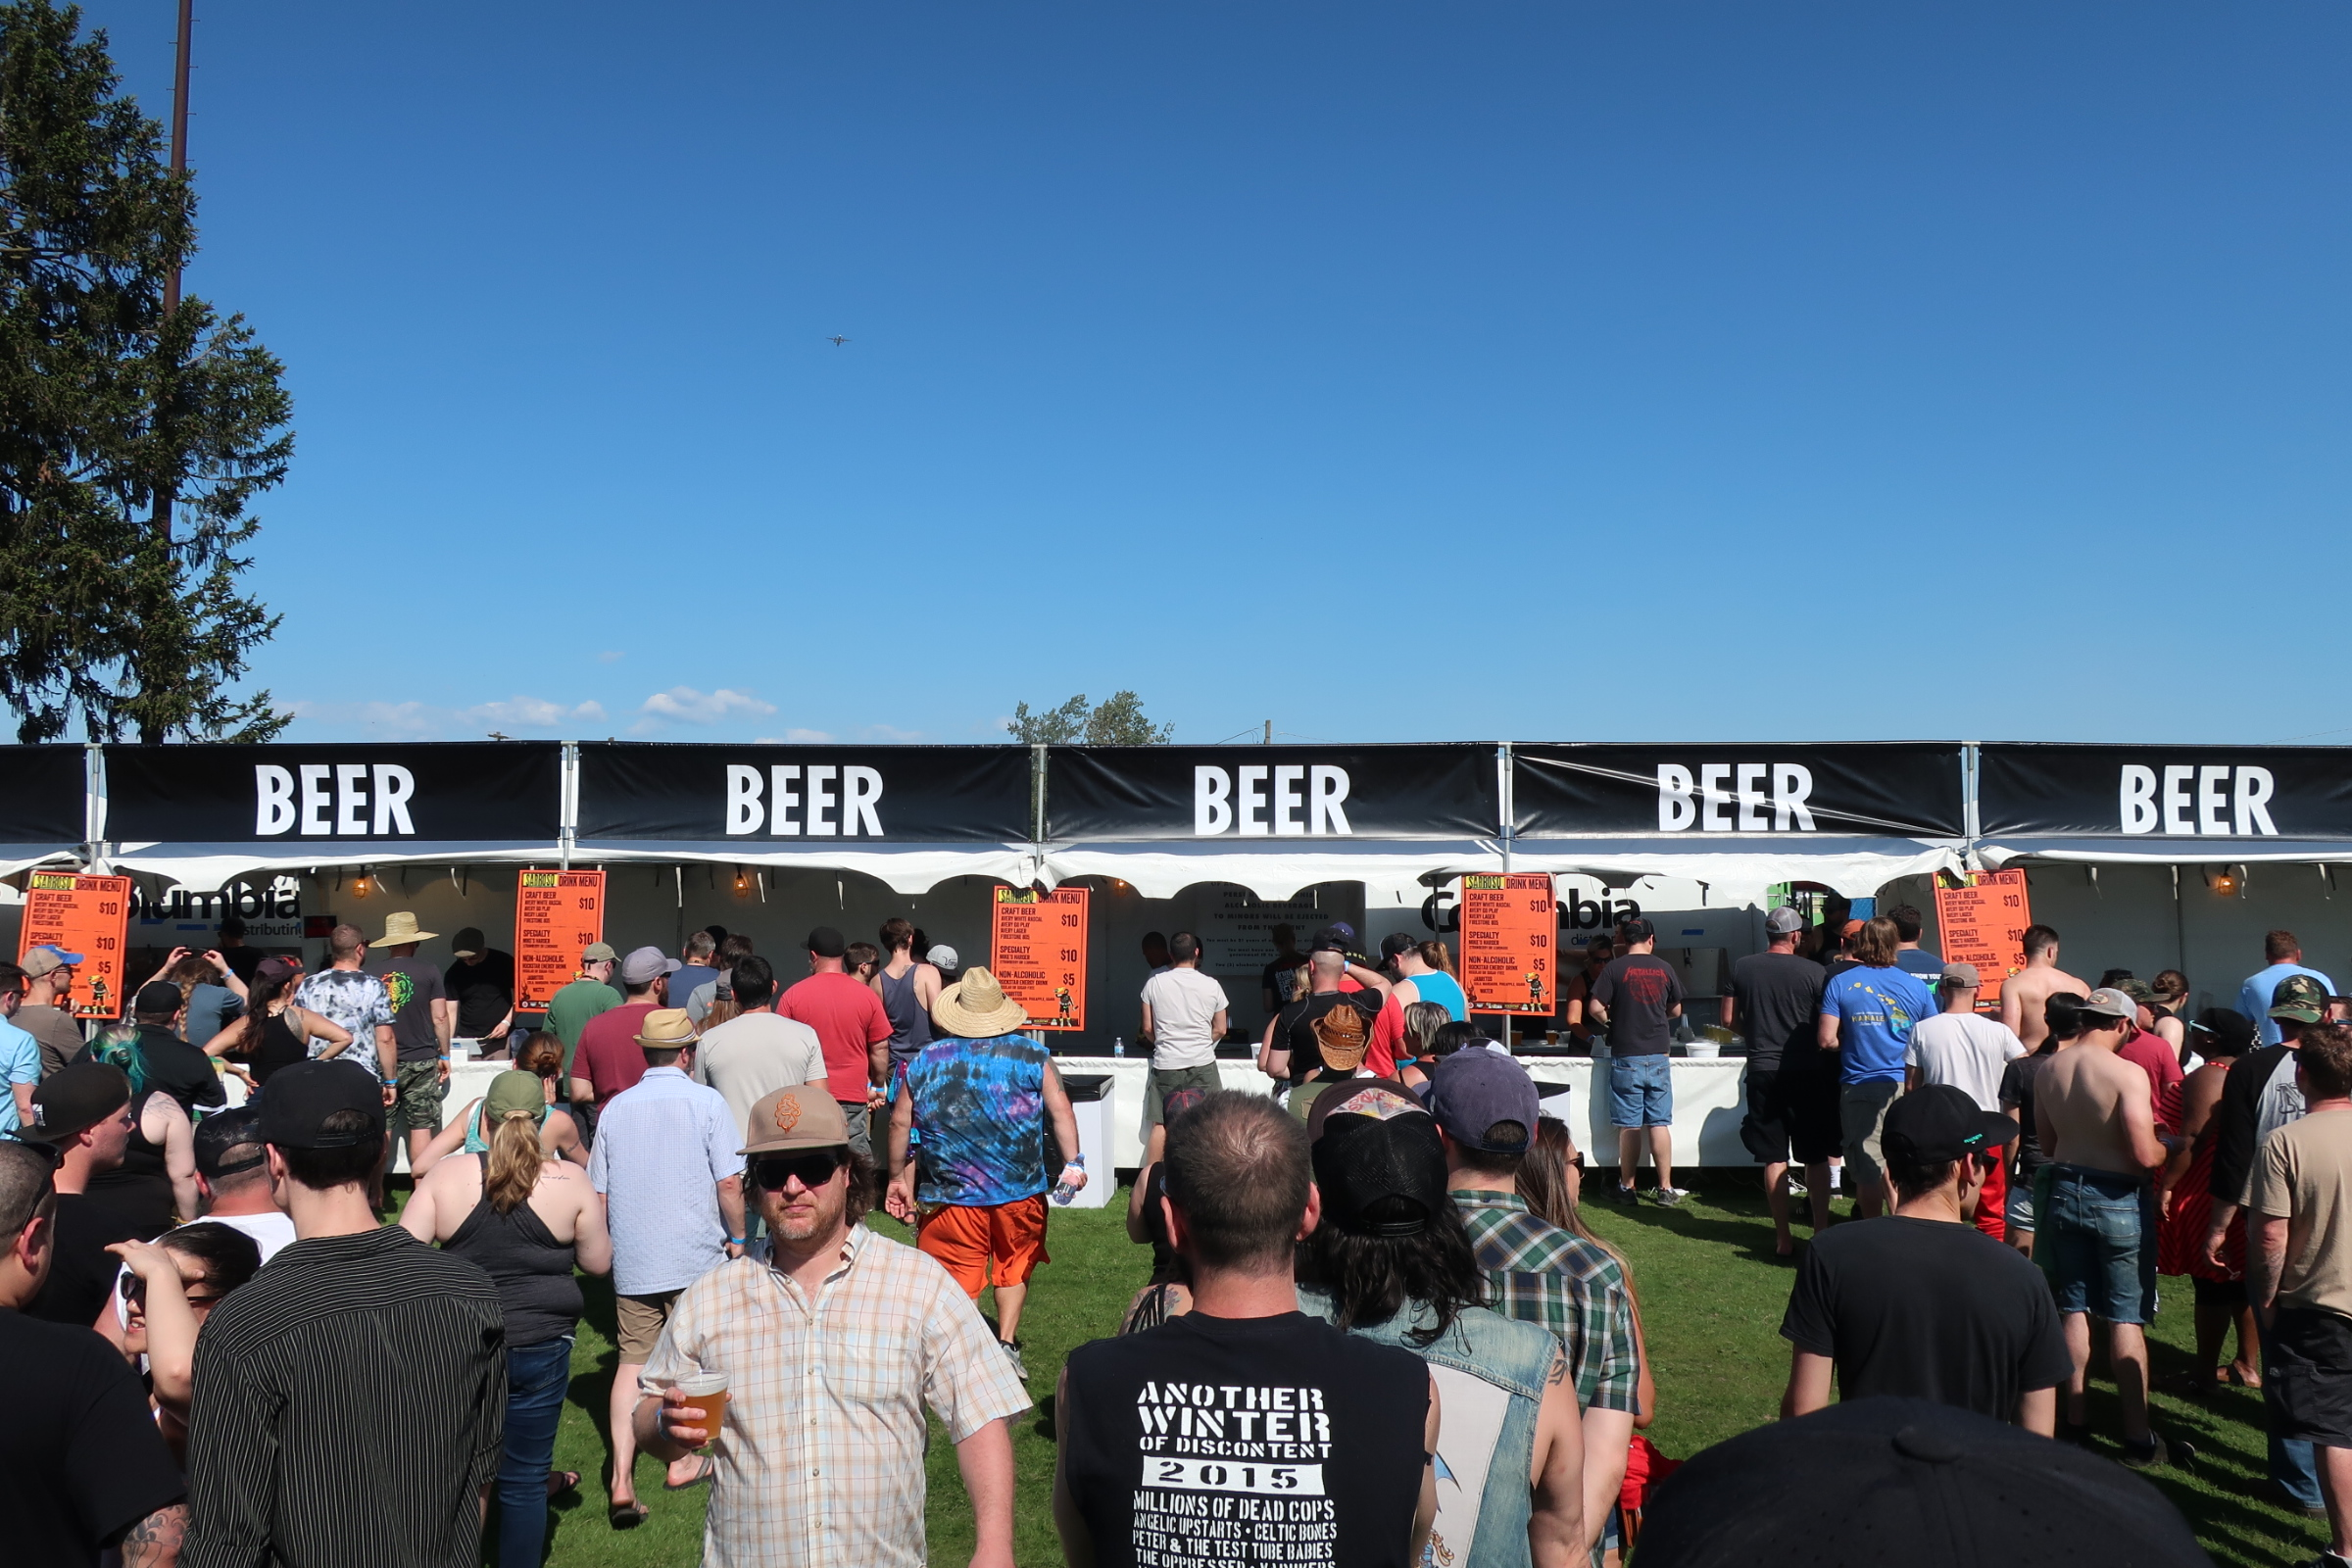 Beer line at the 2018 stop of Sabroso Craft Beer, Taco & Music Festival in Portland, Oregon.